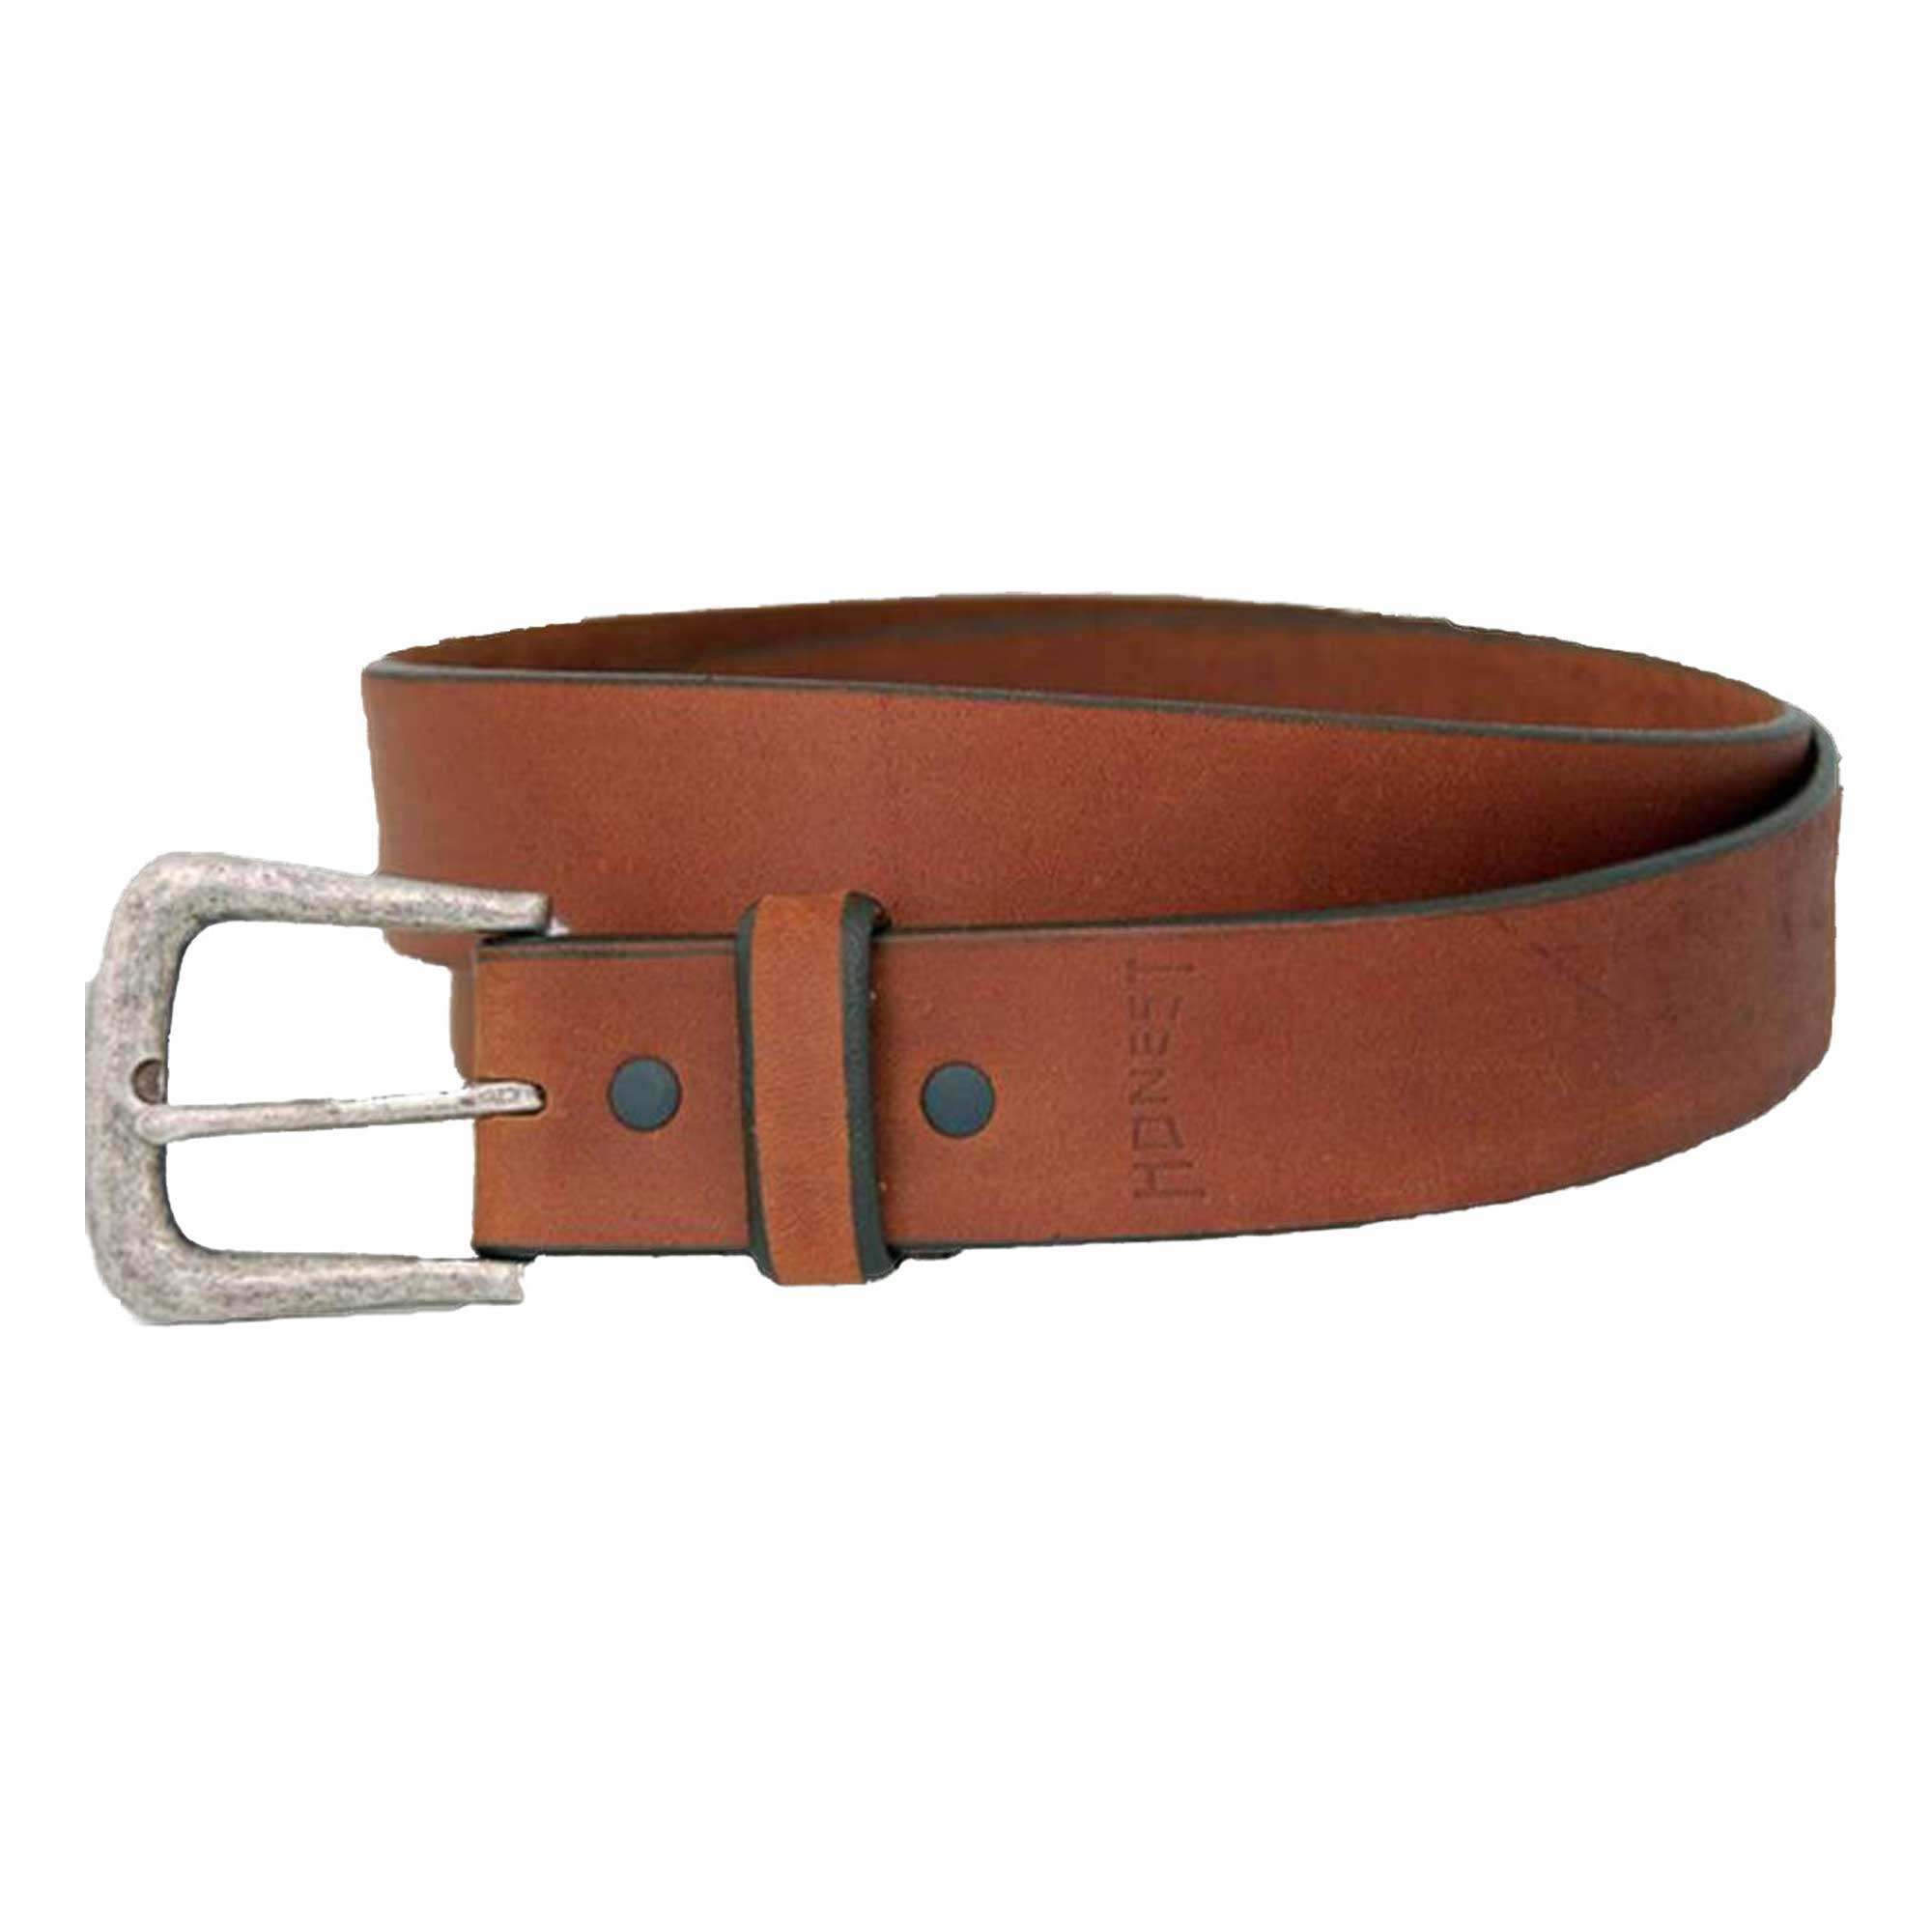 Leegin Creative Leather Men's 1 3/8 Inch Brown Belt